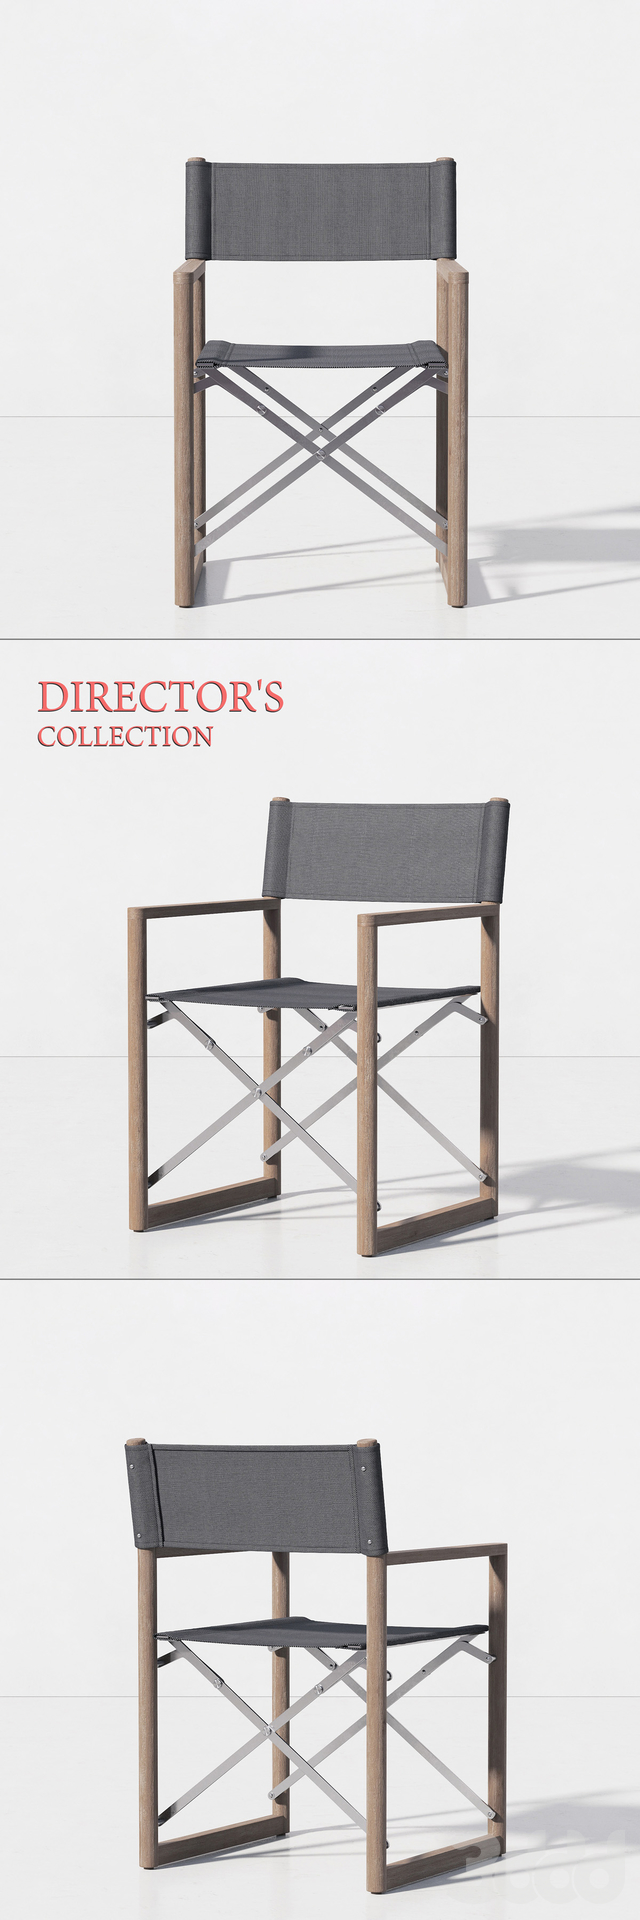 RH/ DIRECTOR'S COLLECTION